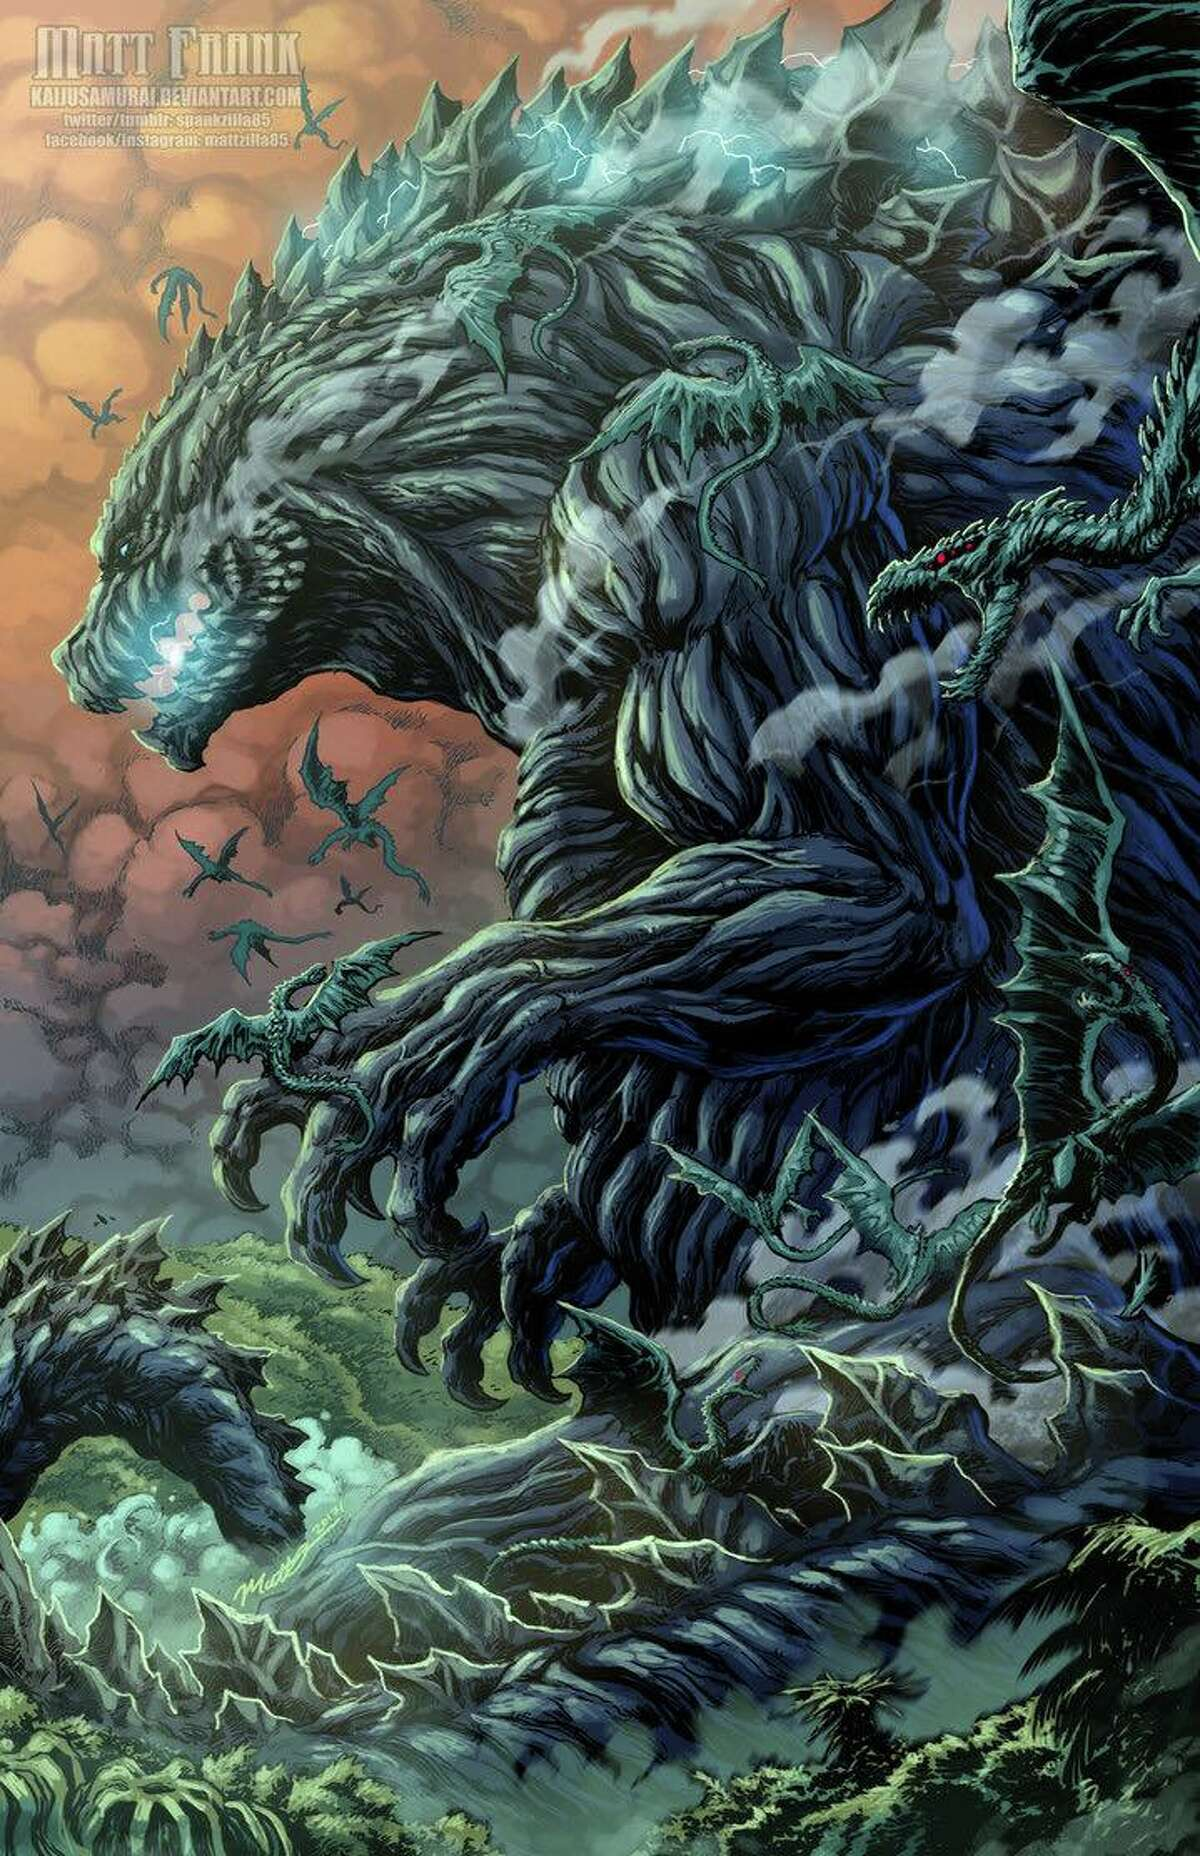 San Antonio native and professional Godzilla artist Matt Frank created this monstrously good depiction of the iconic movie monster.